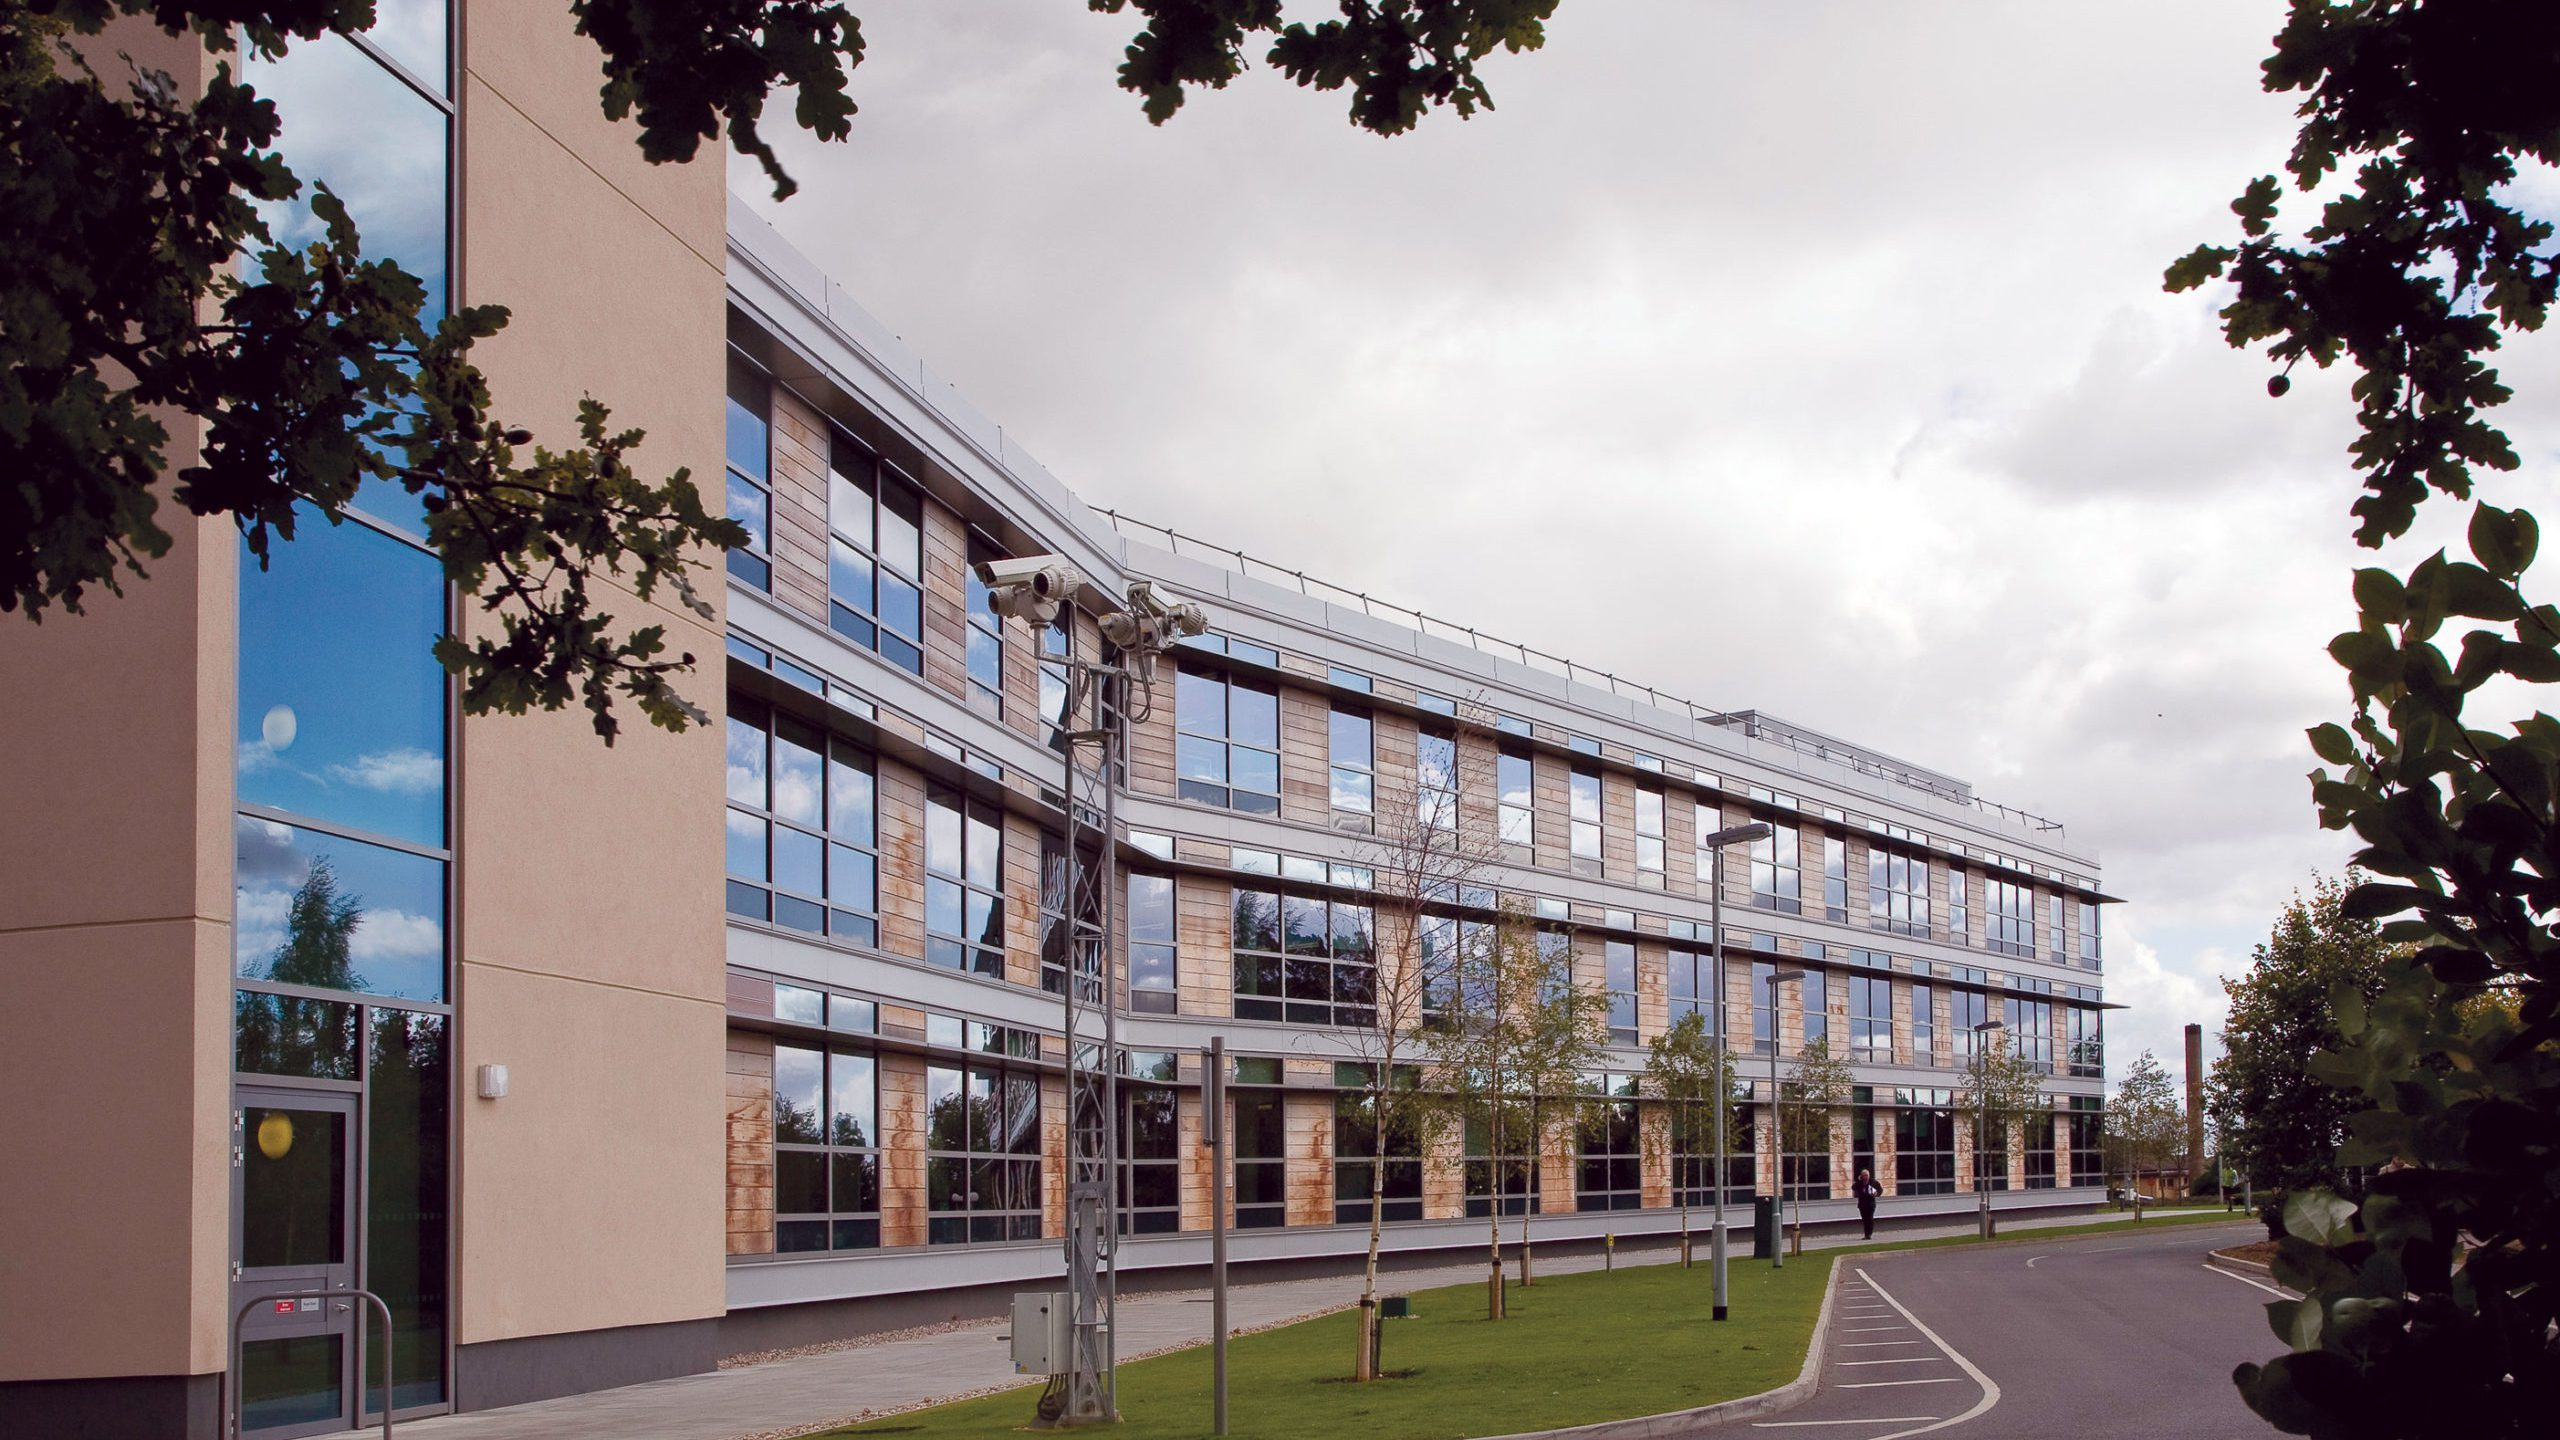 Exterior of one of our buildings at Hanslope Park. Modern offices with large glass windows.